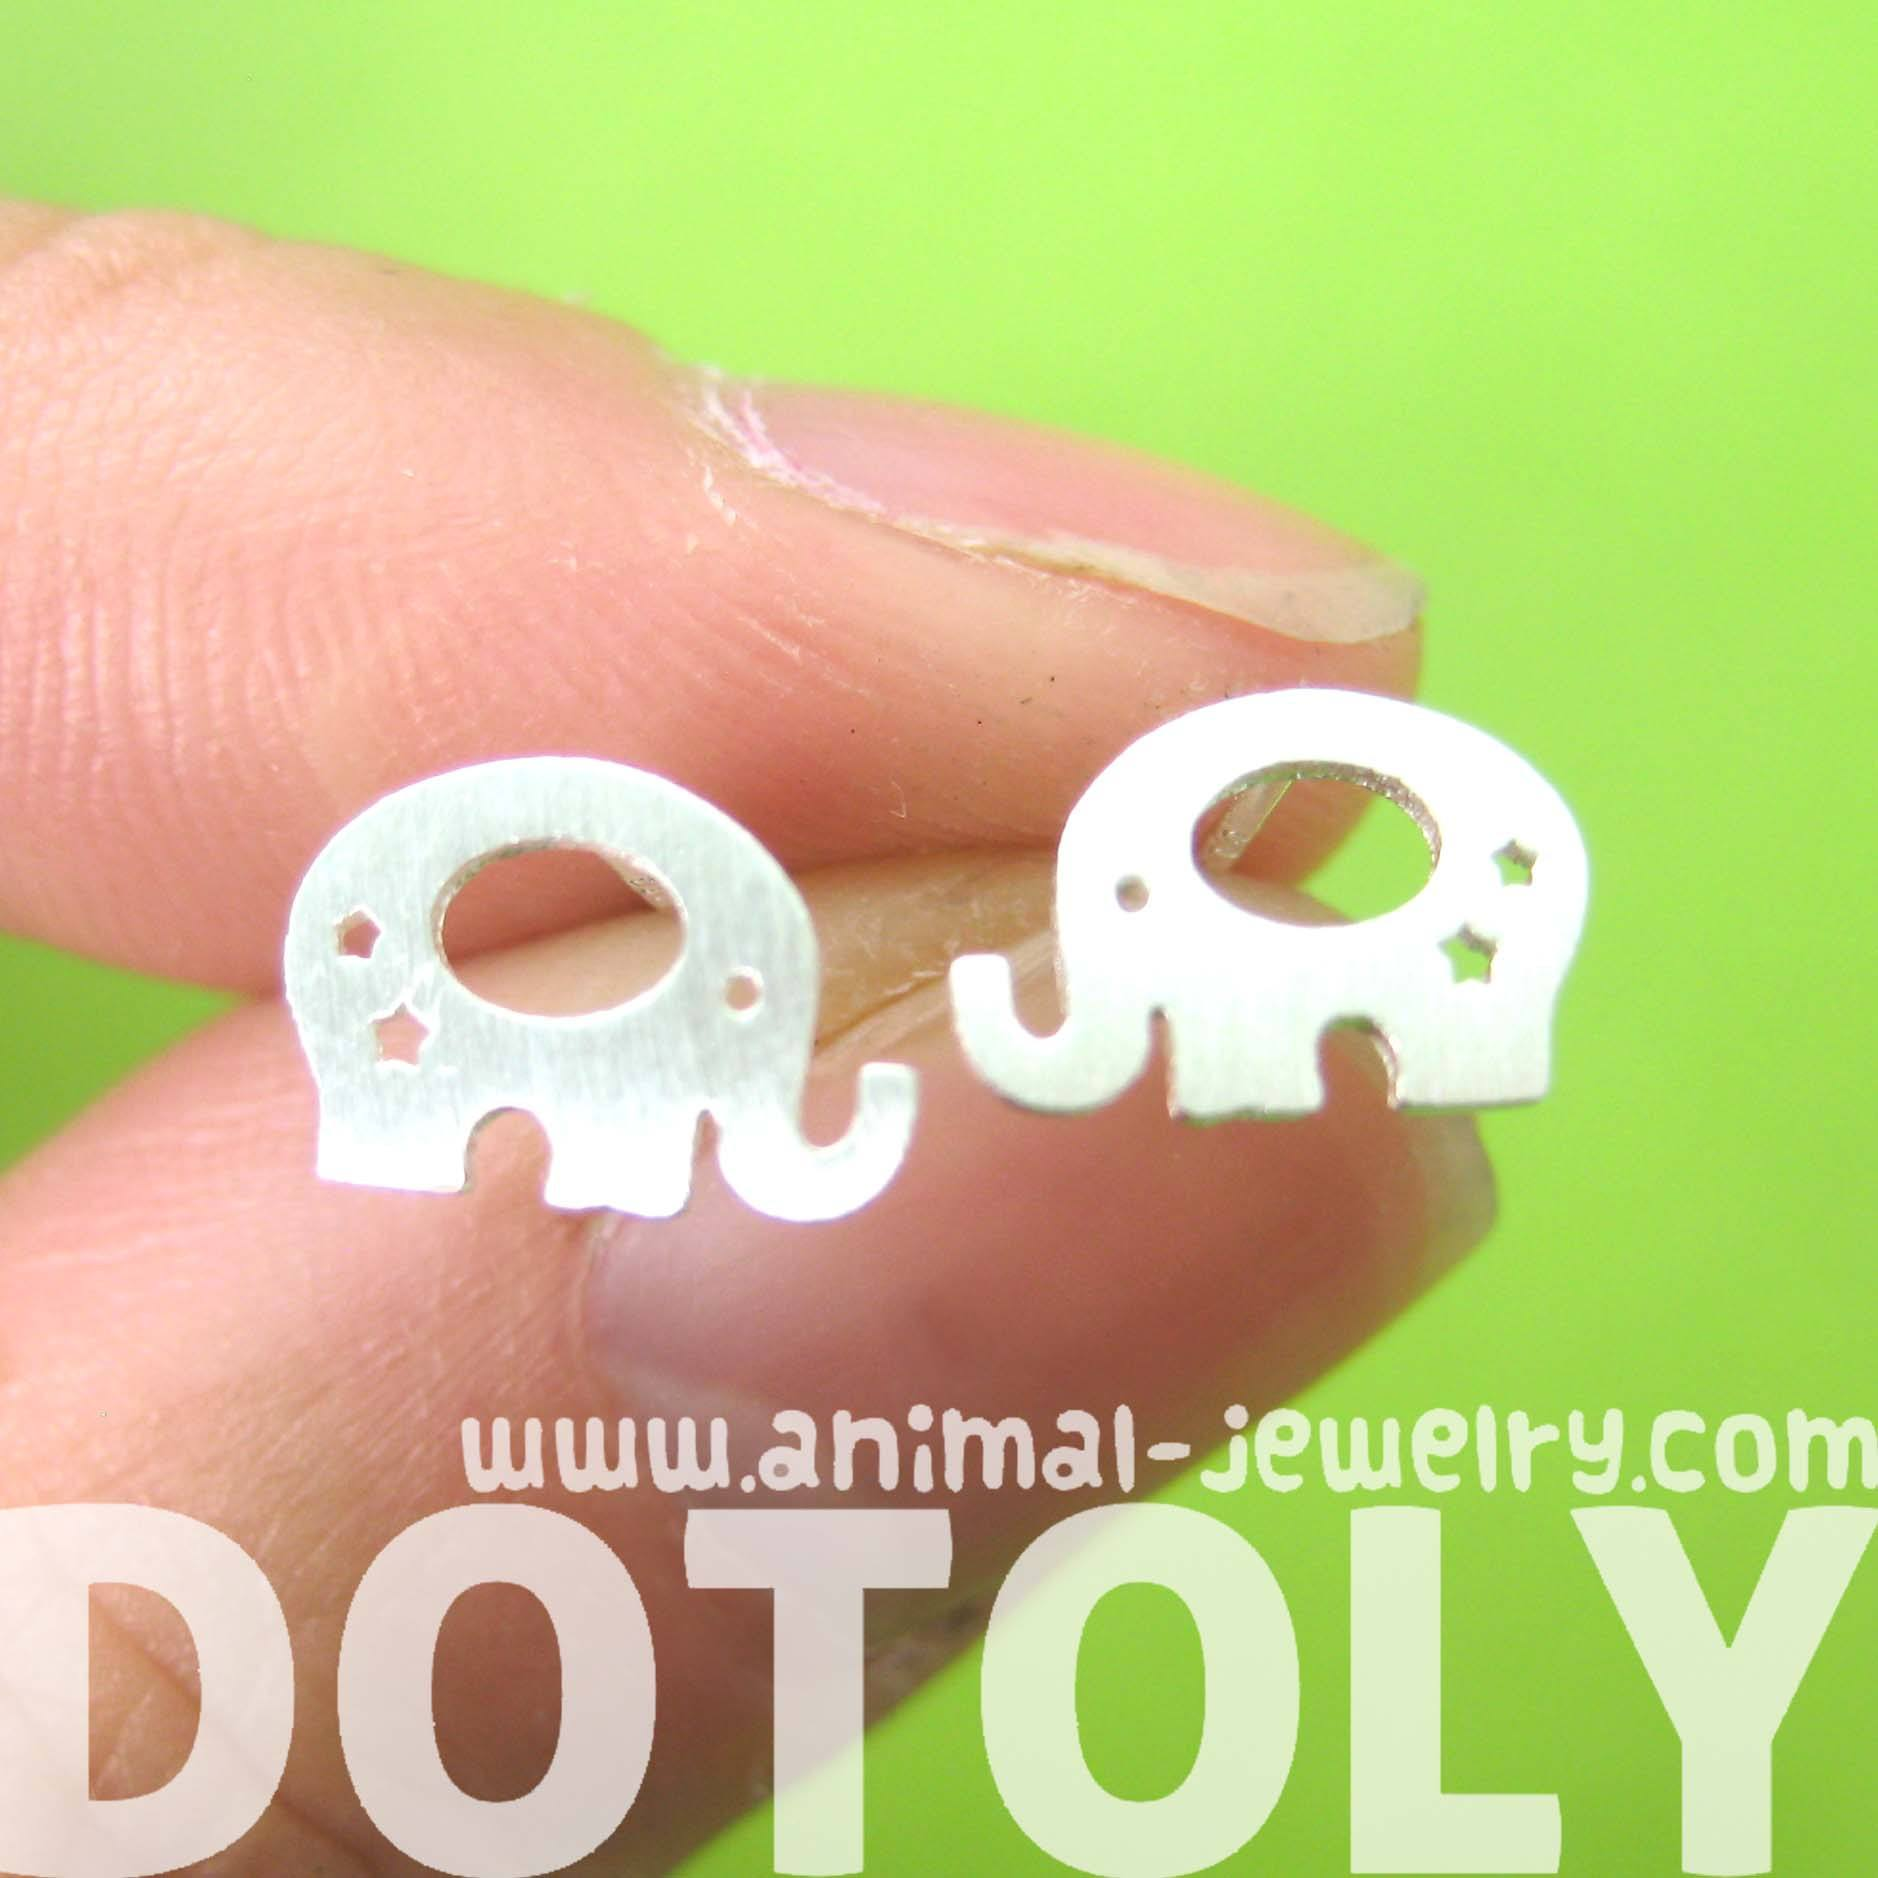 Adorable Elephant Shaped Stud Earrings in Silver | Allergy Free